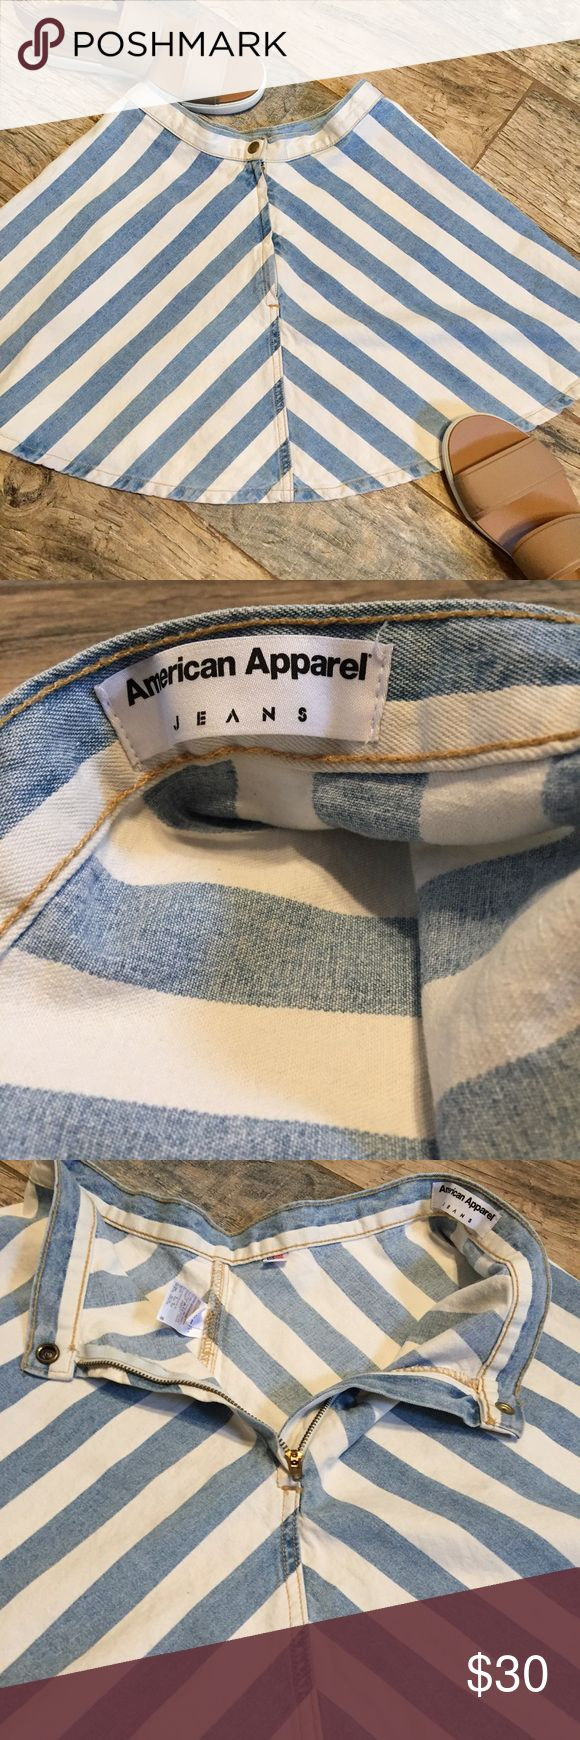 American Apparel Denim Striped Circle/Skater Skirt NWOT! Approx measurements when laid flat = 15 in from button to bottom hem, 14 in side to side at waist (so approx 28 all the way around). American Apparel Skirts Circle & Skater